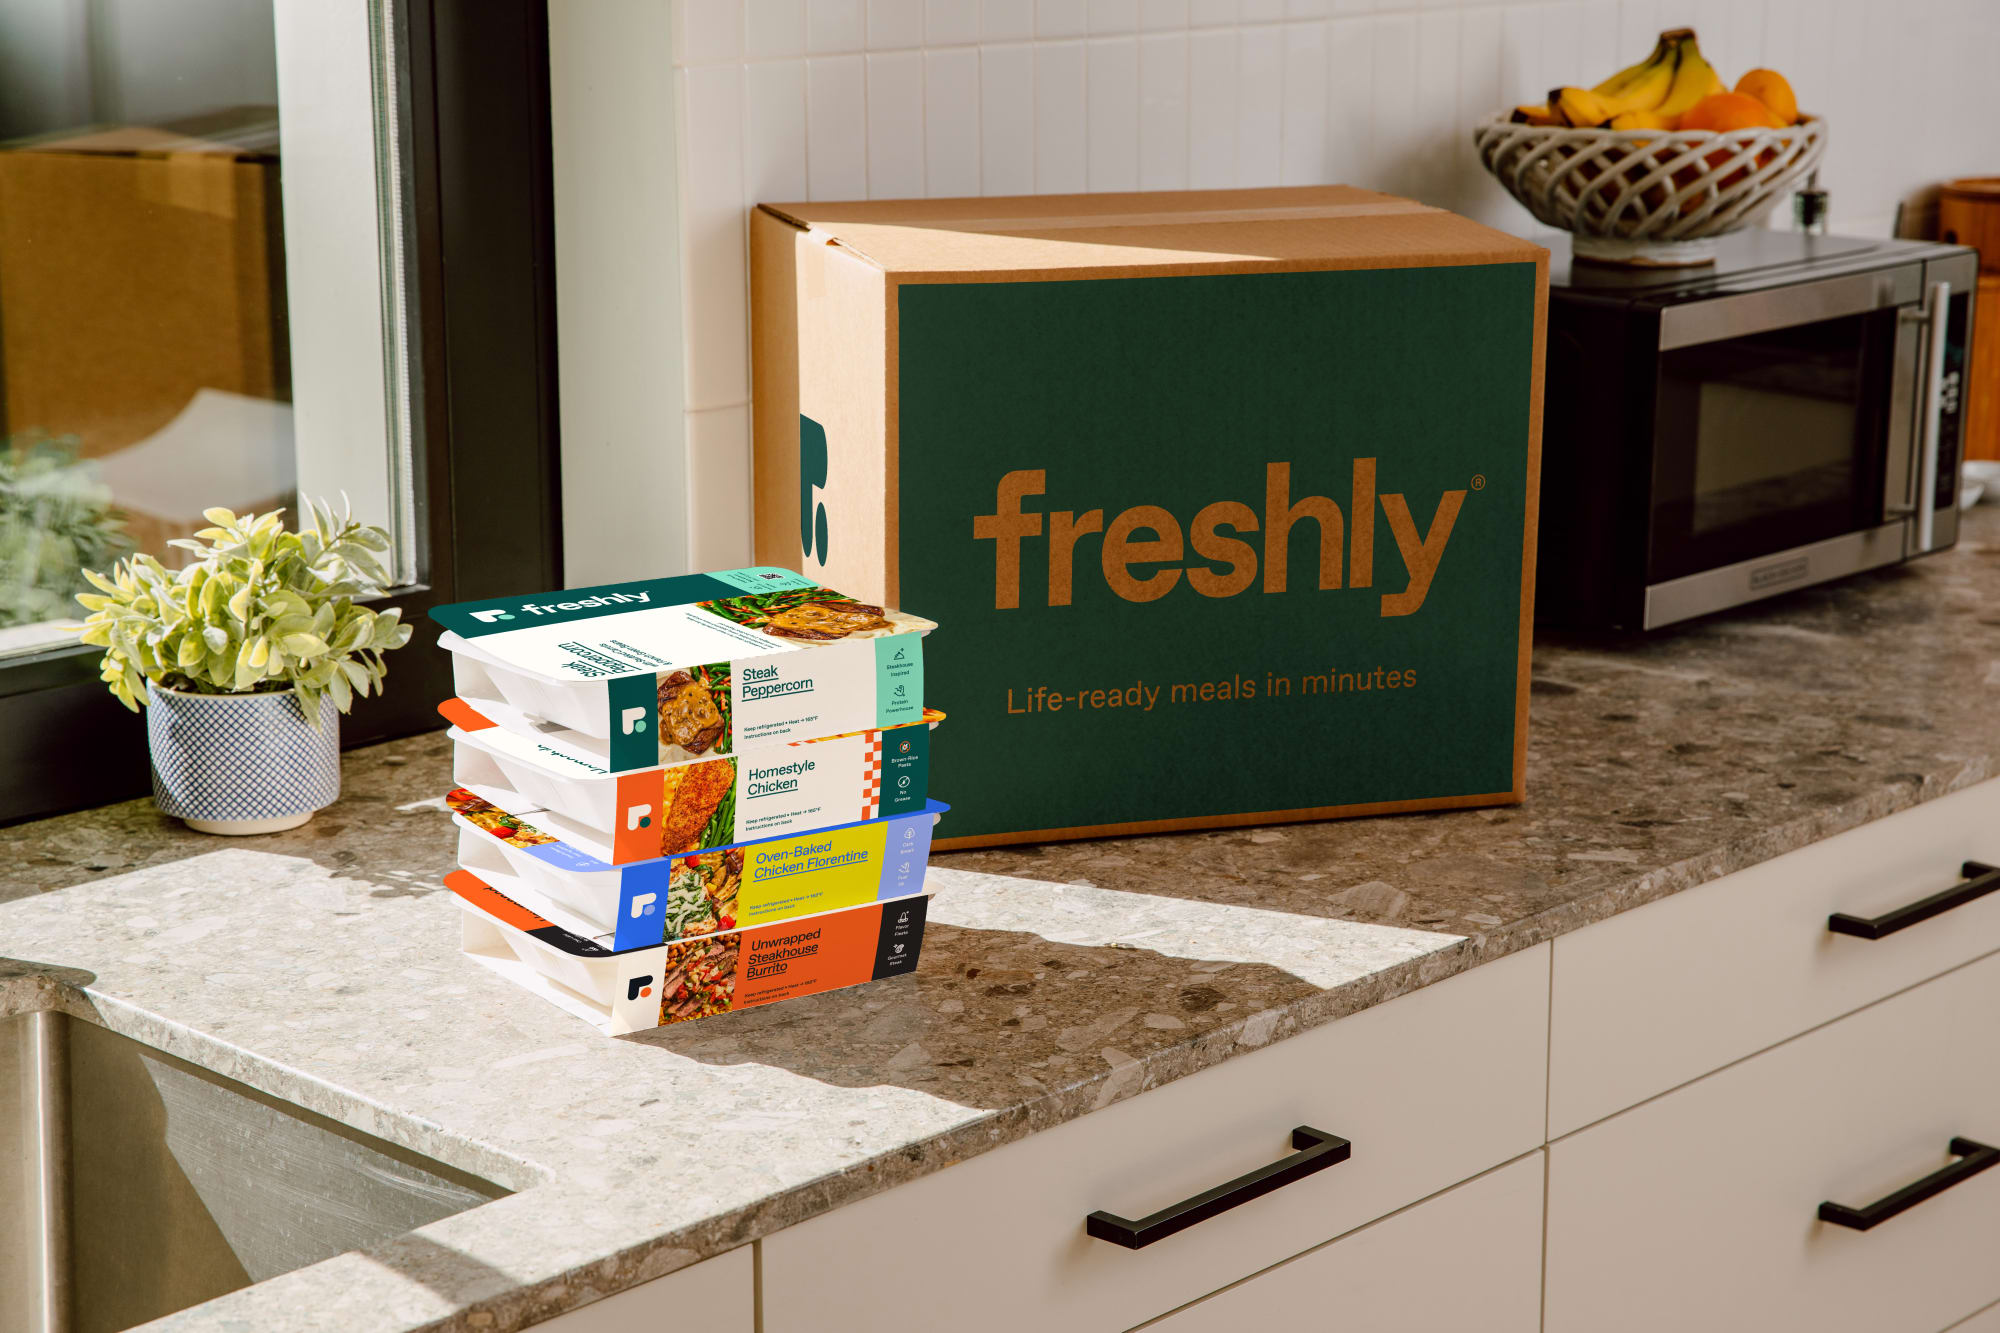 Freshly's pre-made lunch makes working from home easier